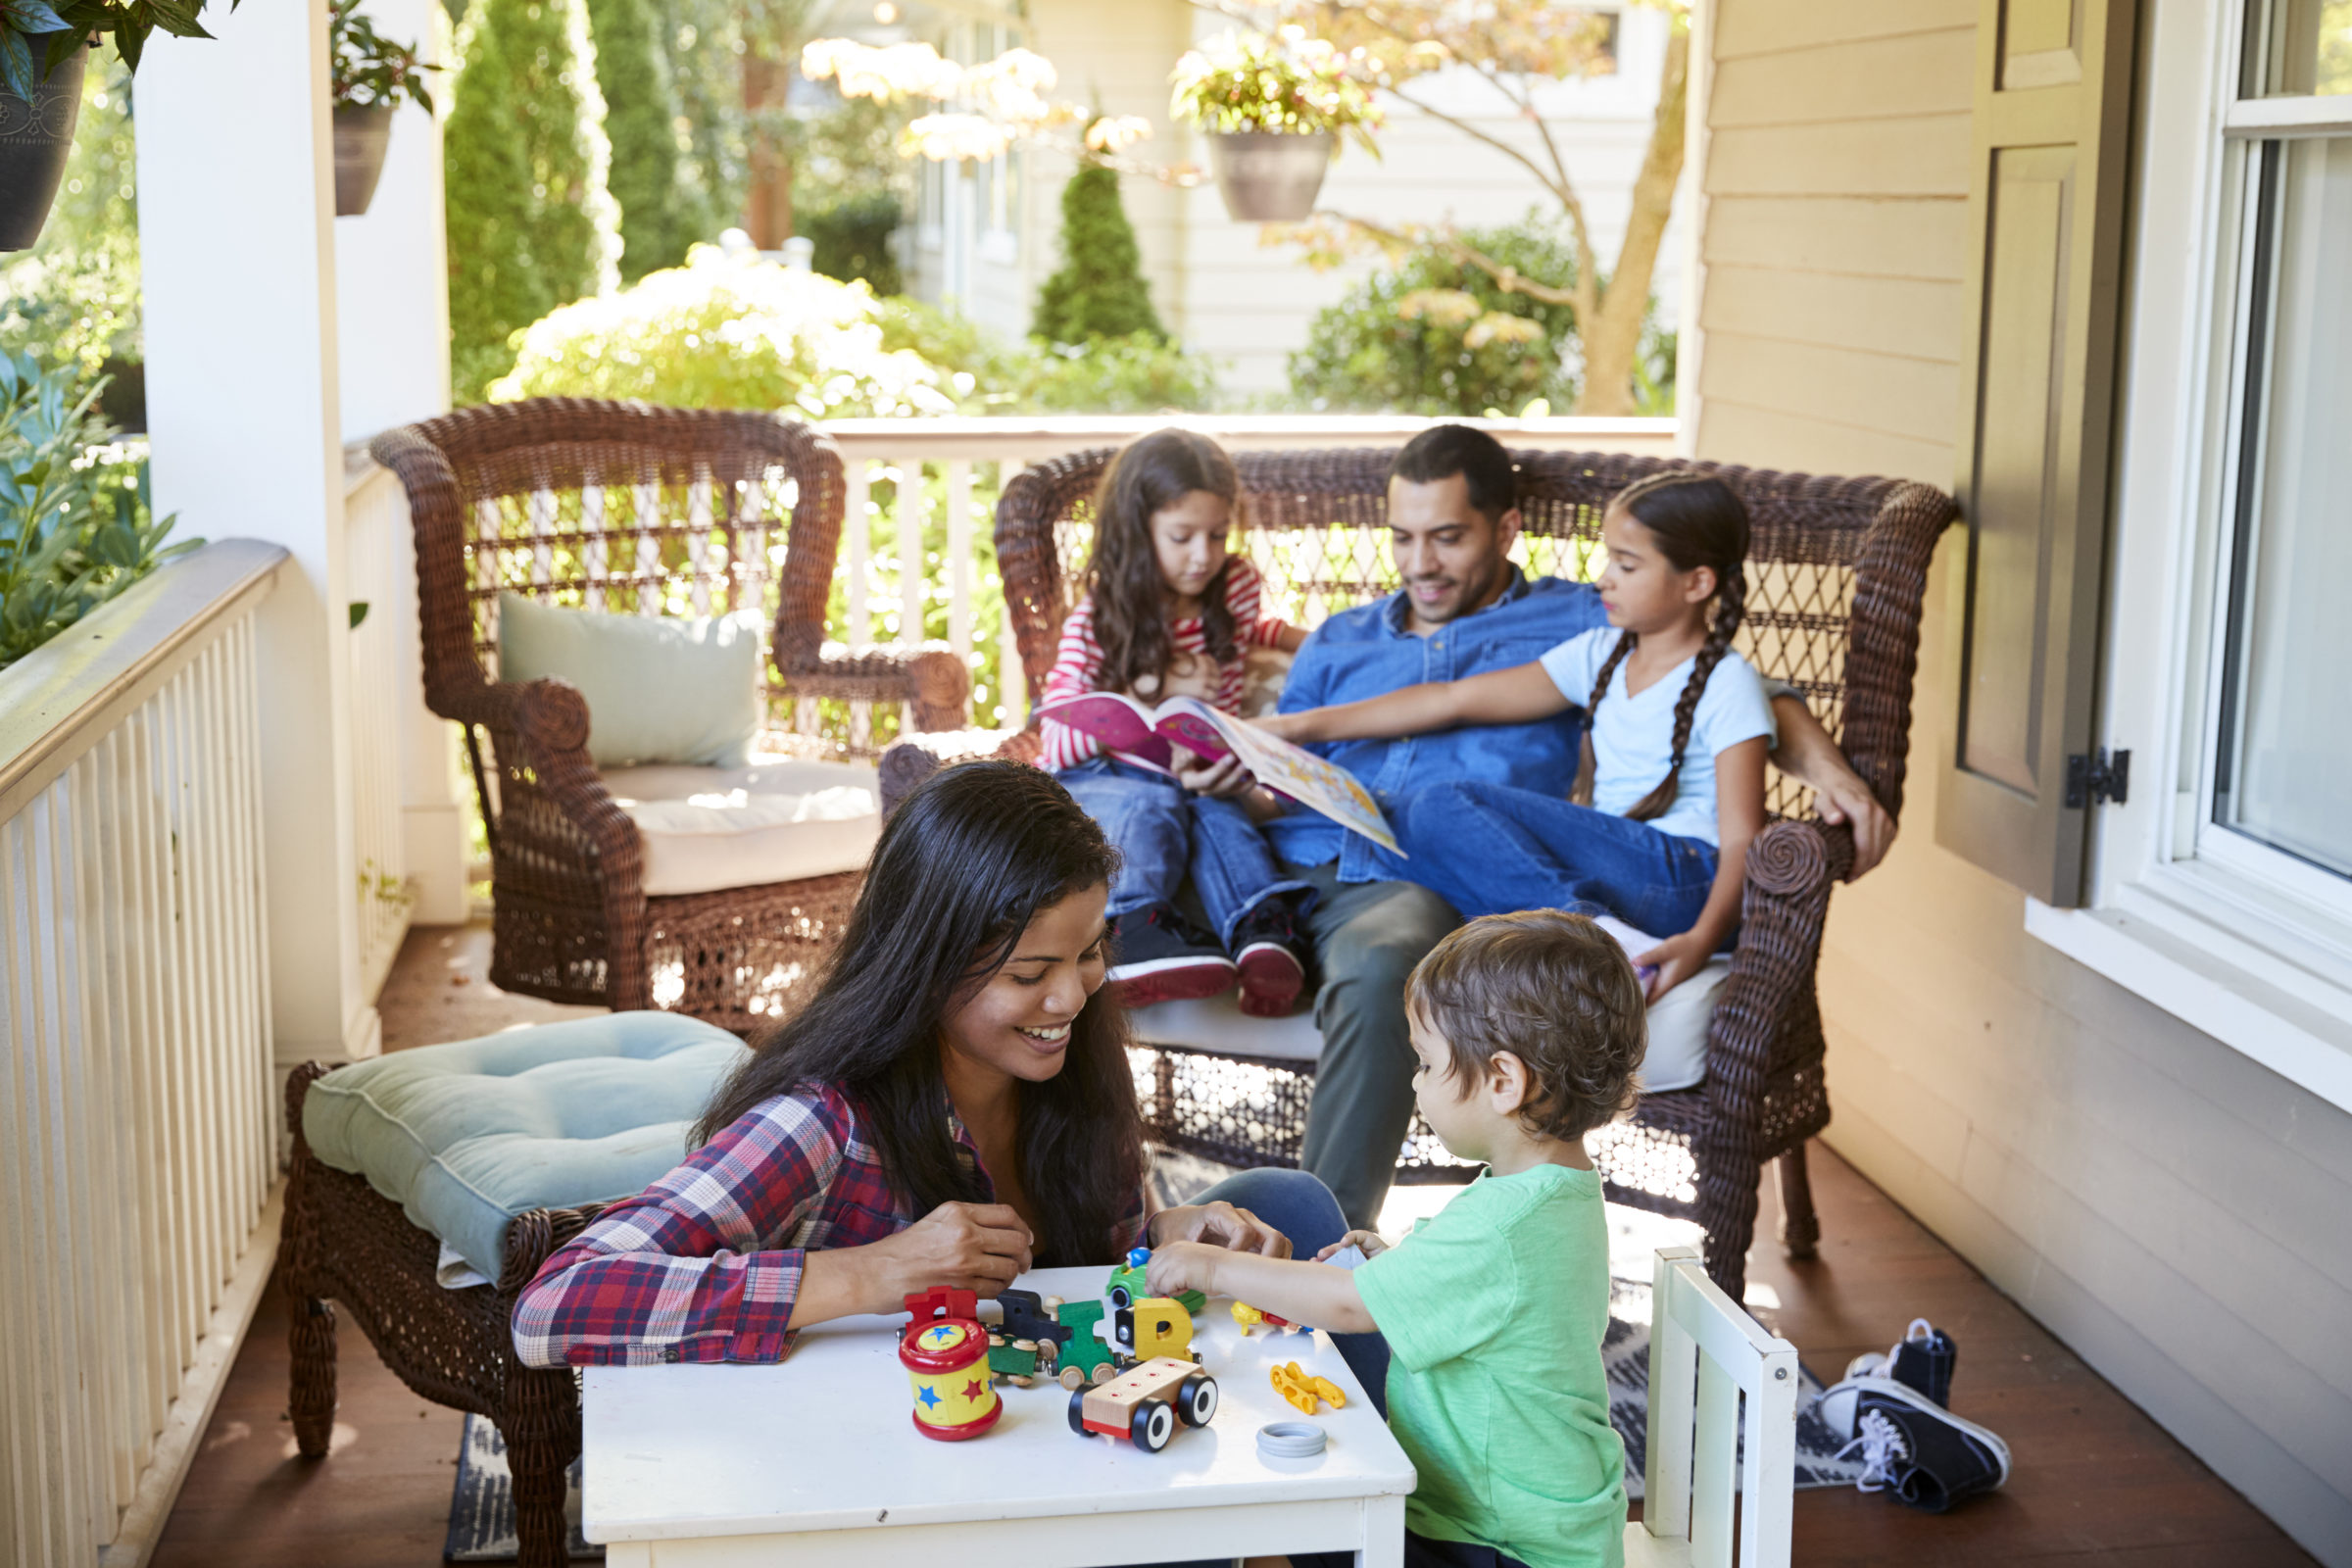 family sit on porch of house reading books and pla PFY8LZS